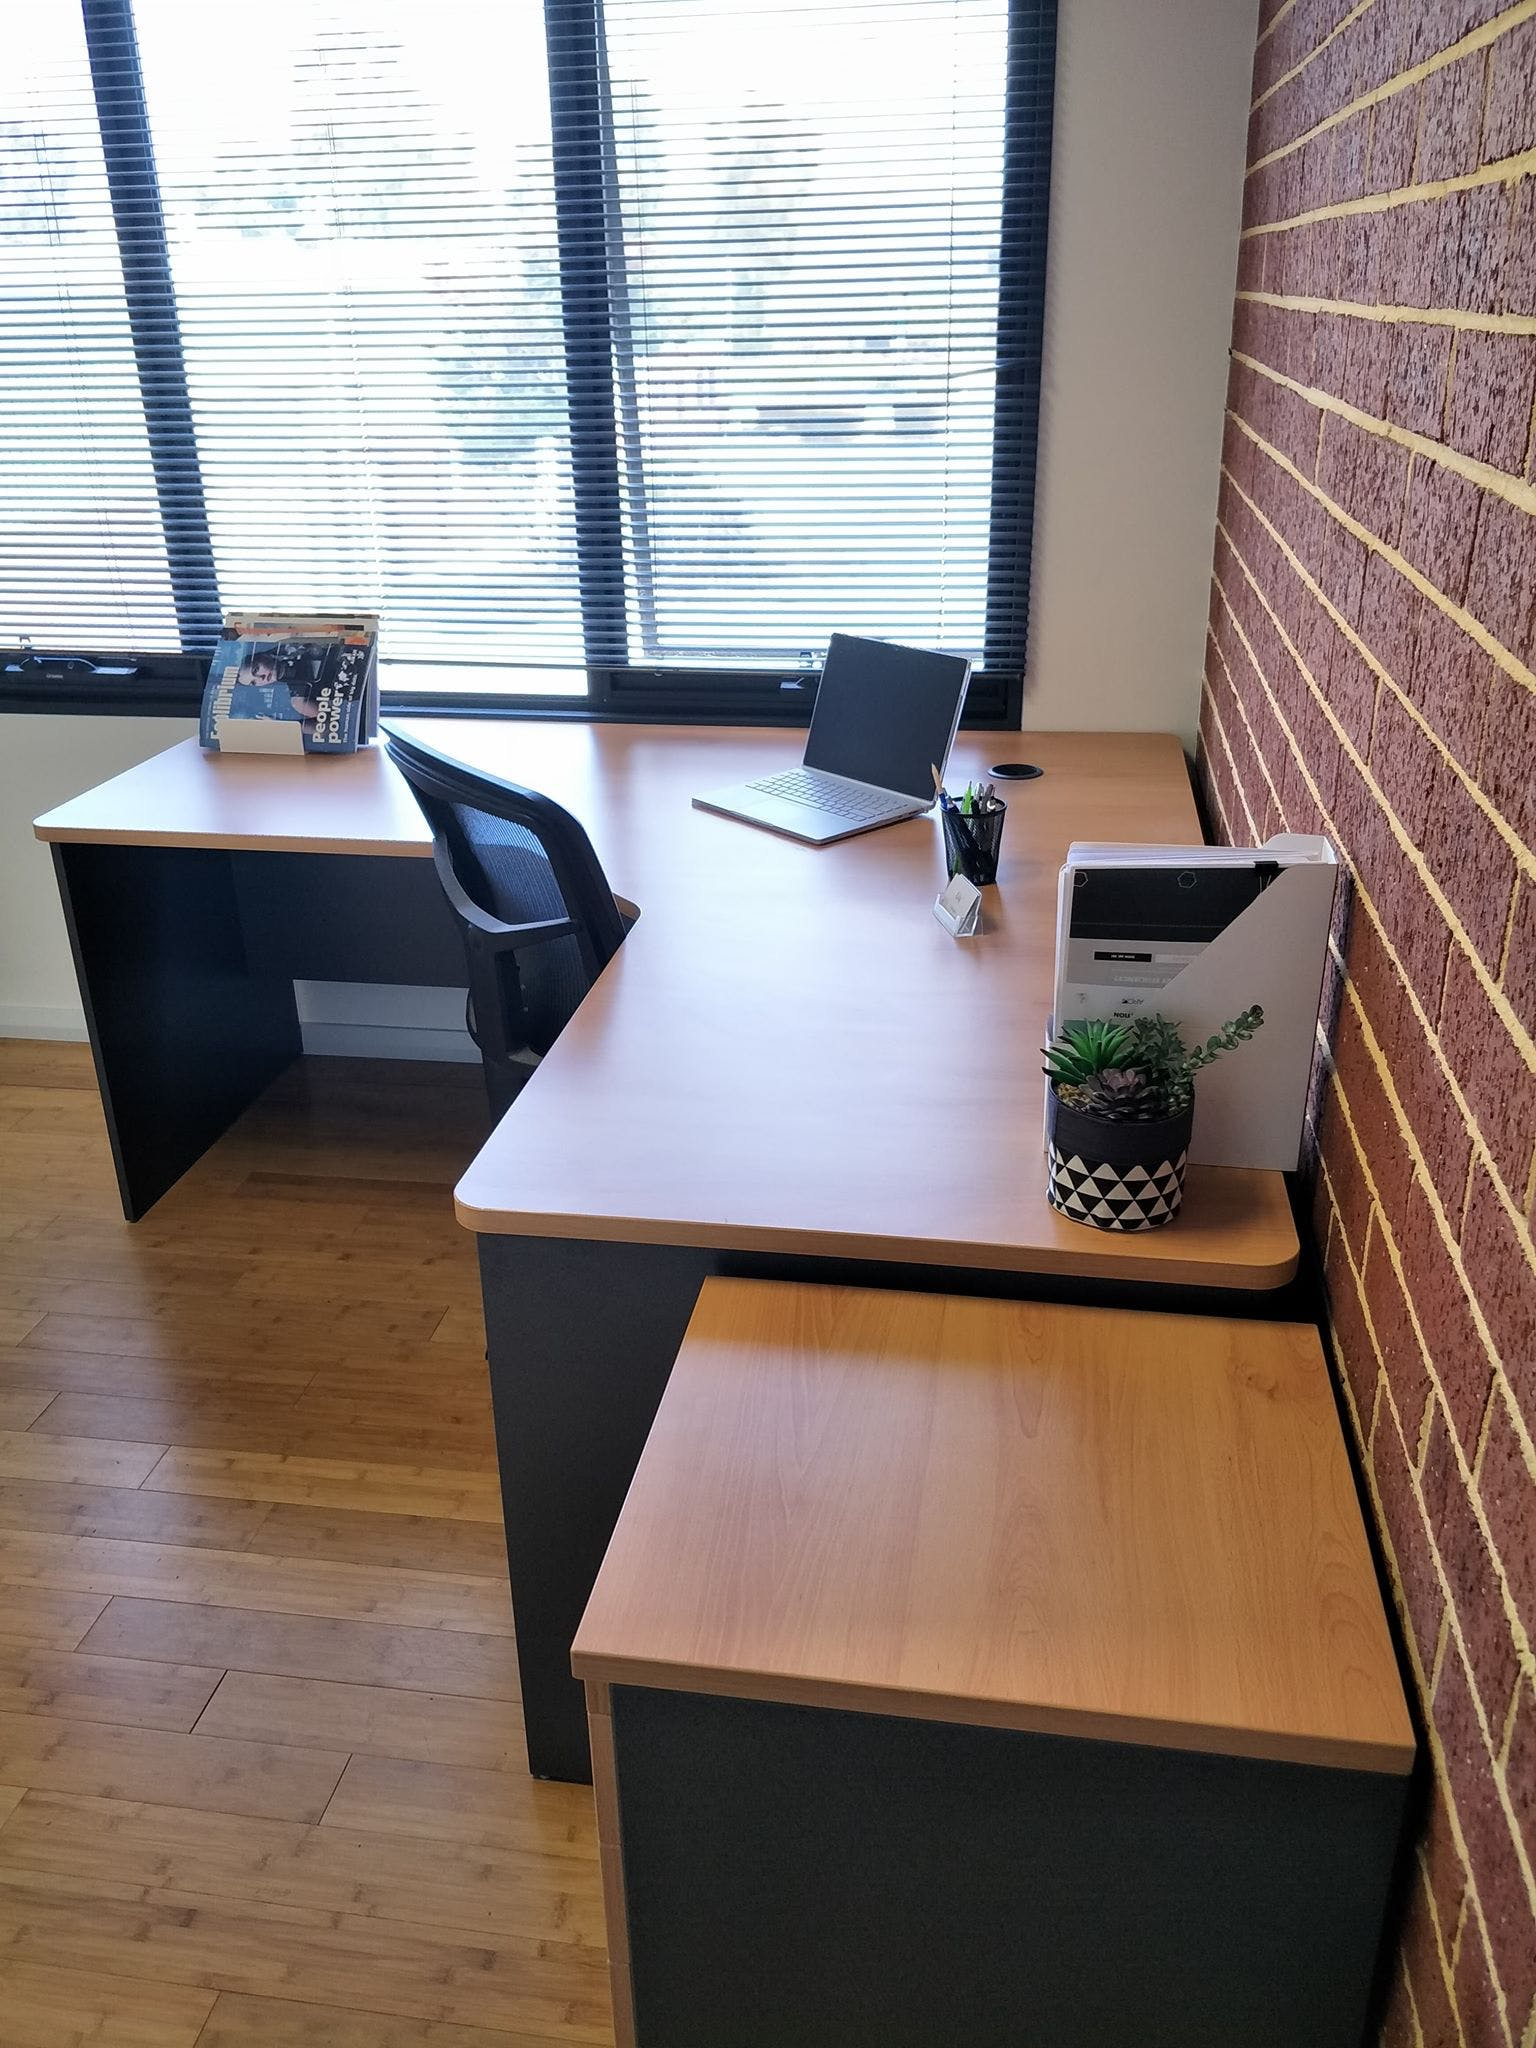 Private office at 10 Ledgar, image 1